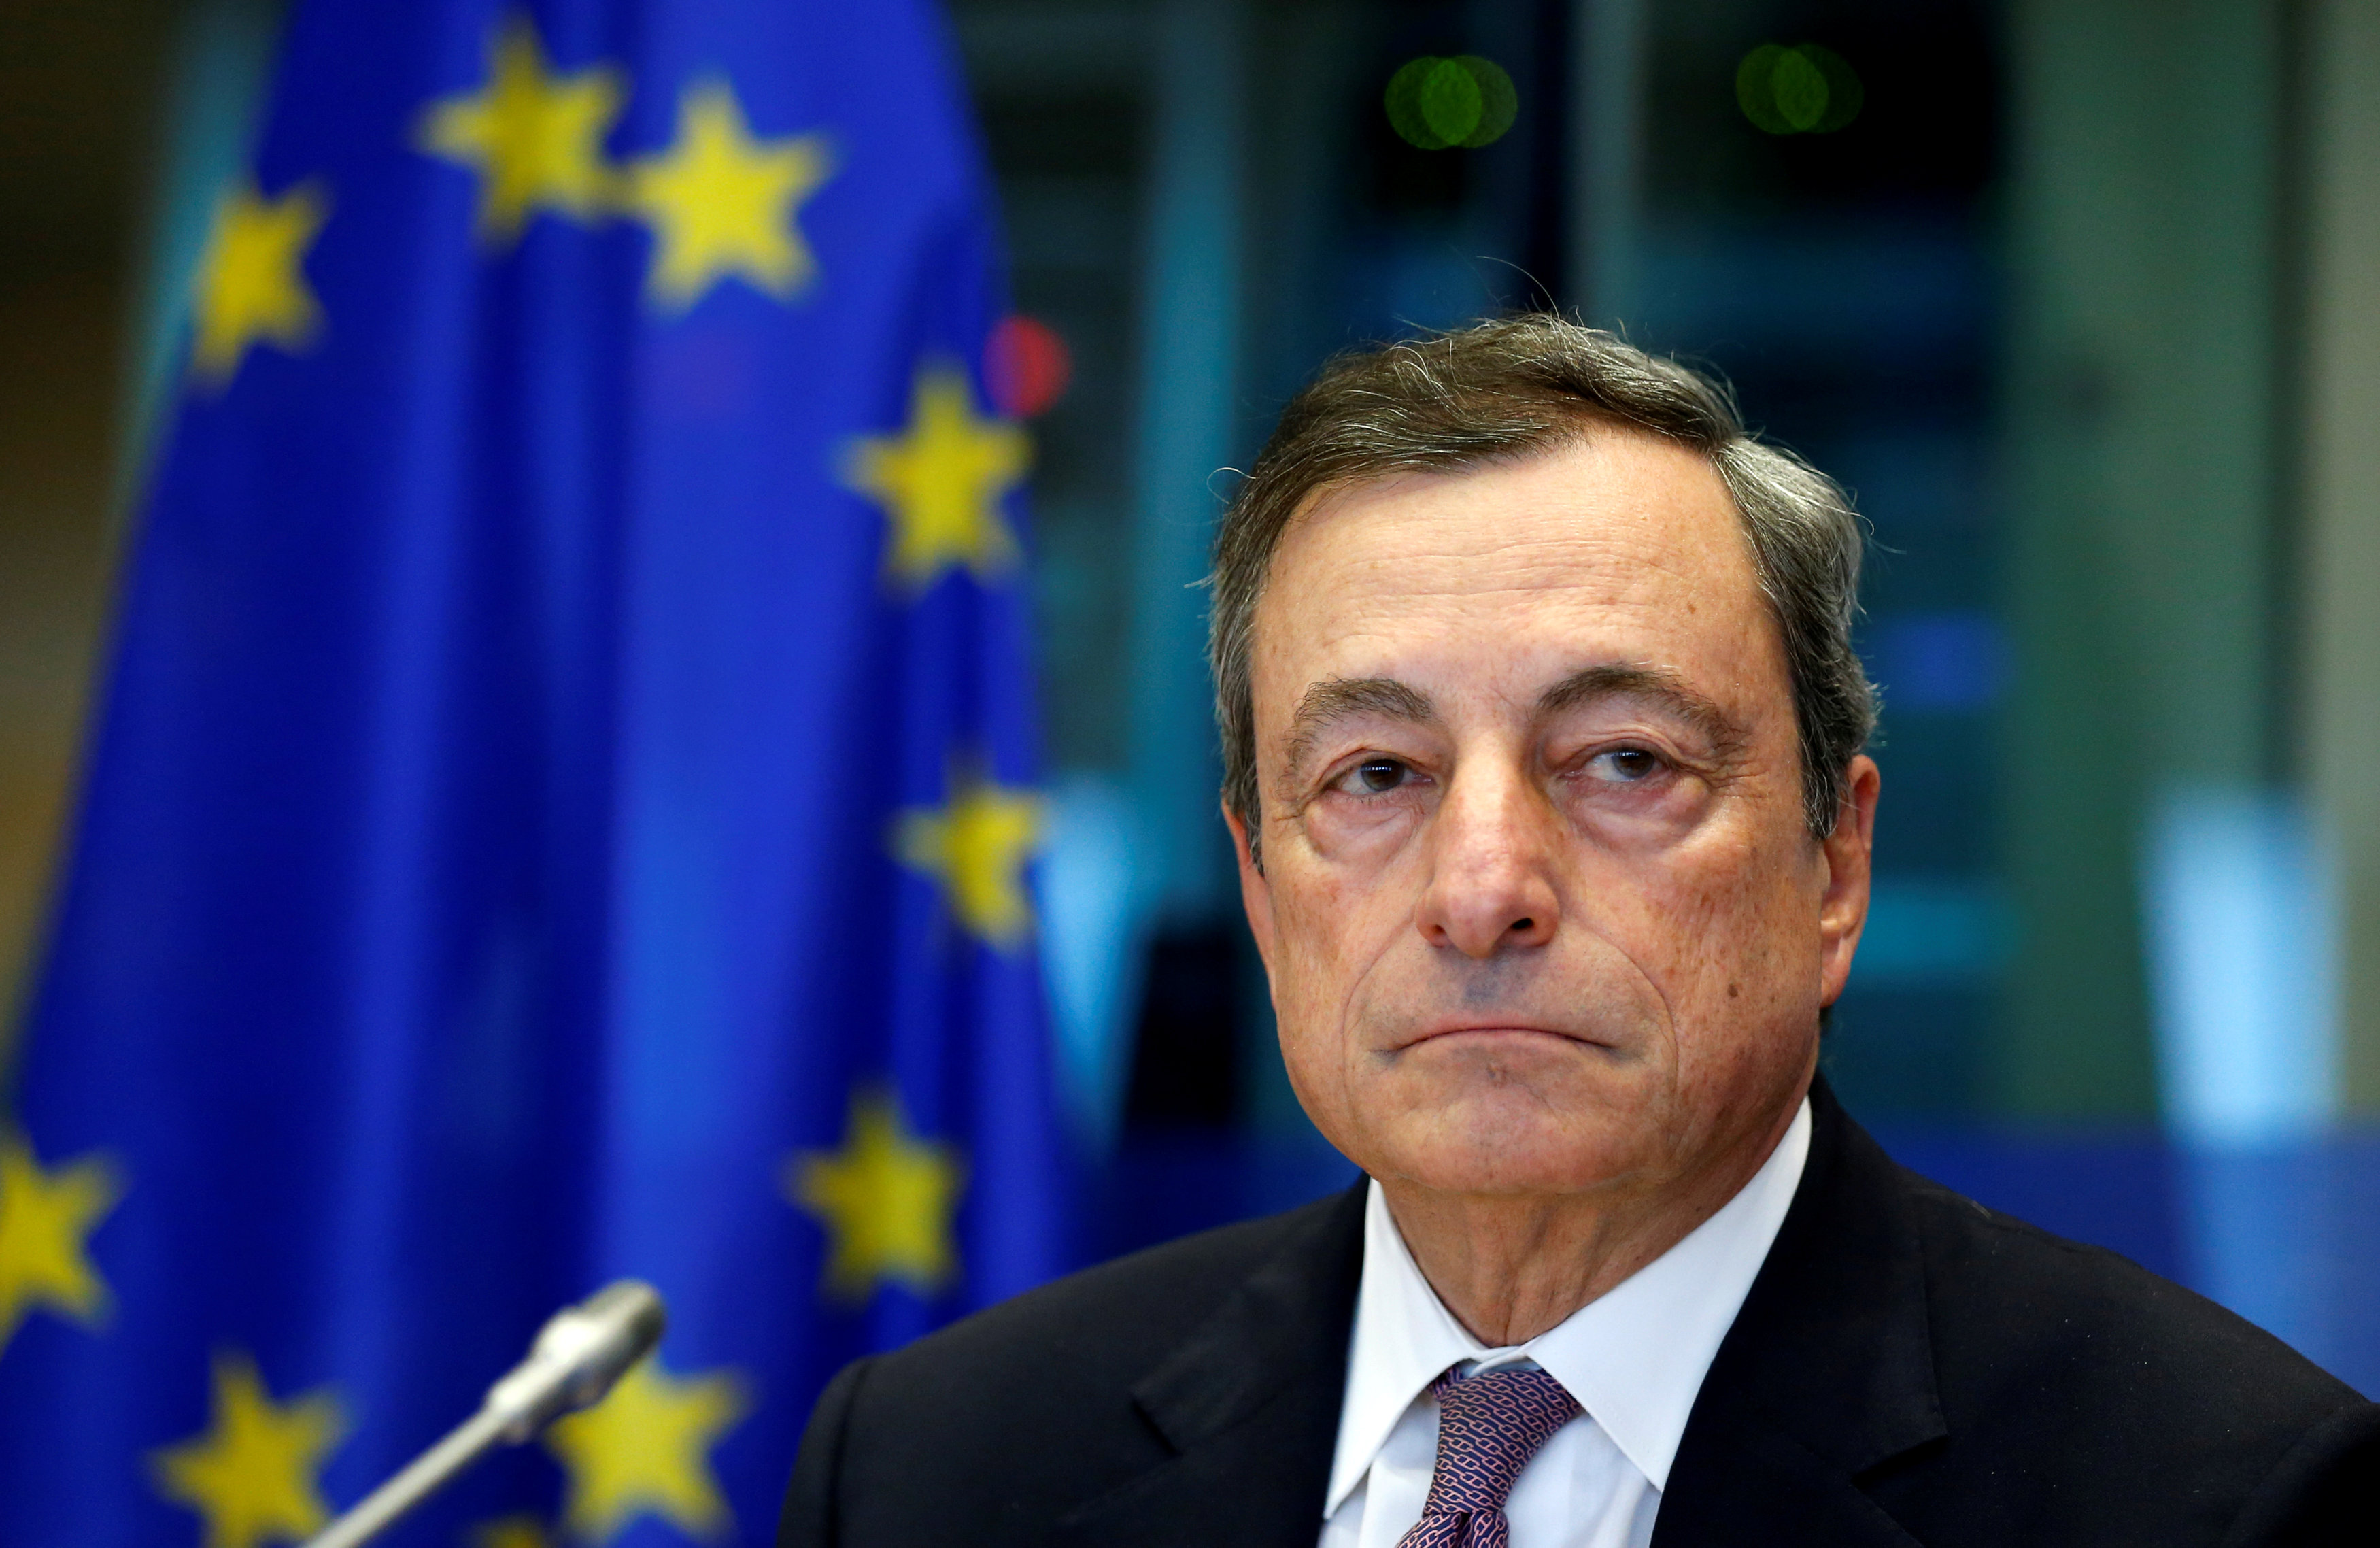 European Central Bank president is facing a tricky balancing act